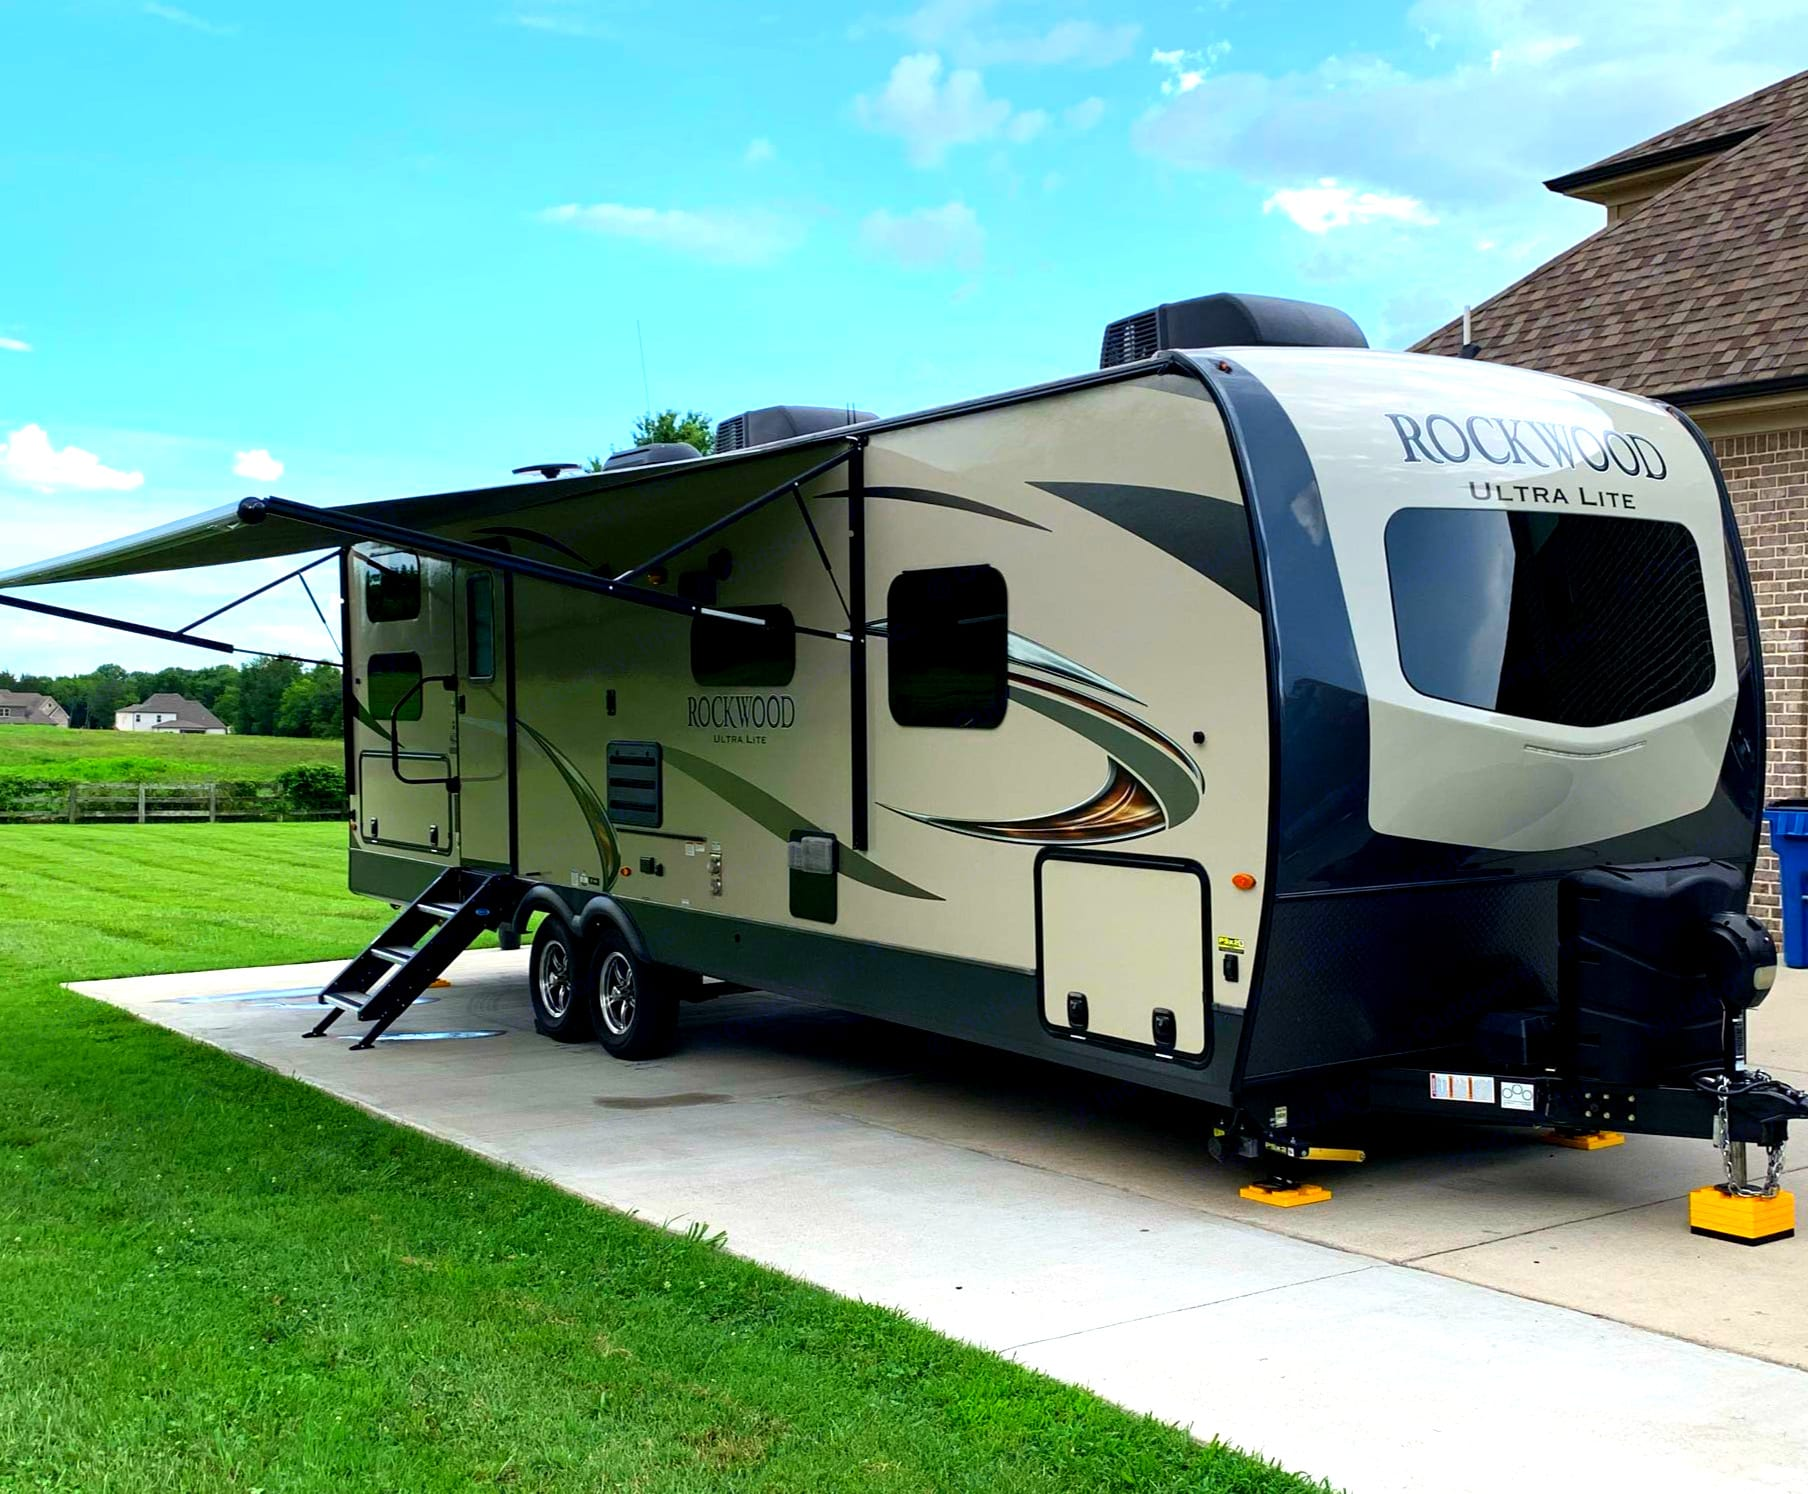 21 foot awning, pass-thru storage, outdoor kitchen ,outdoor TV mount and speakers, grill and table attachments. Power jack and stabilizers.. Forest River Rockwood Ultra Lite 2020